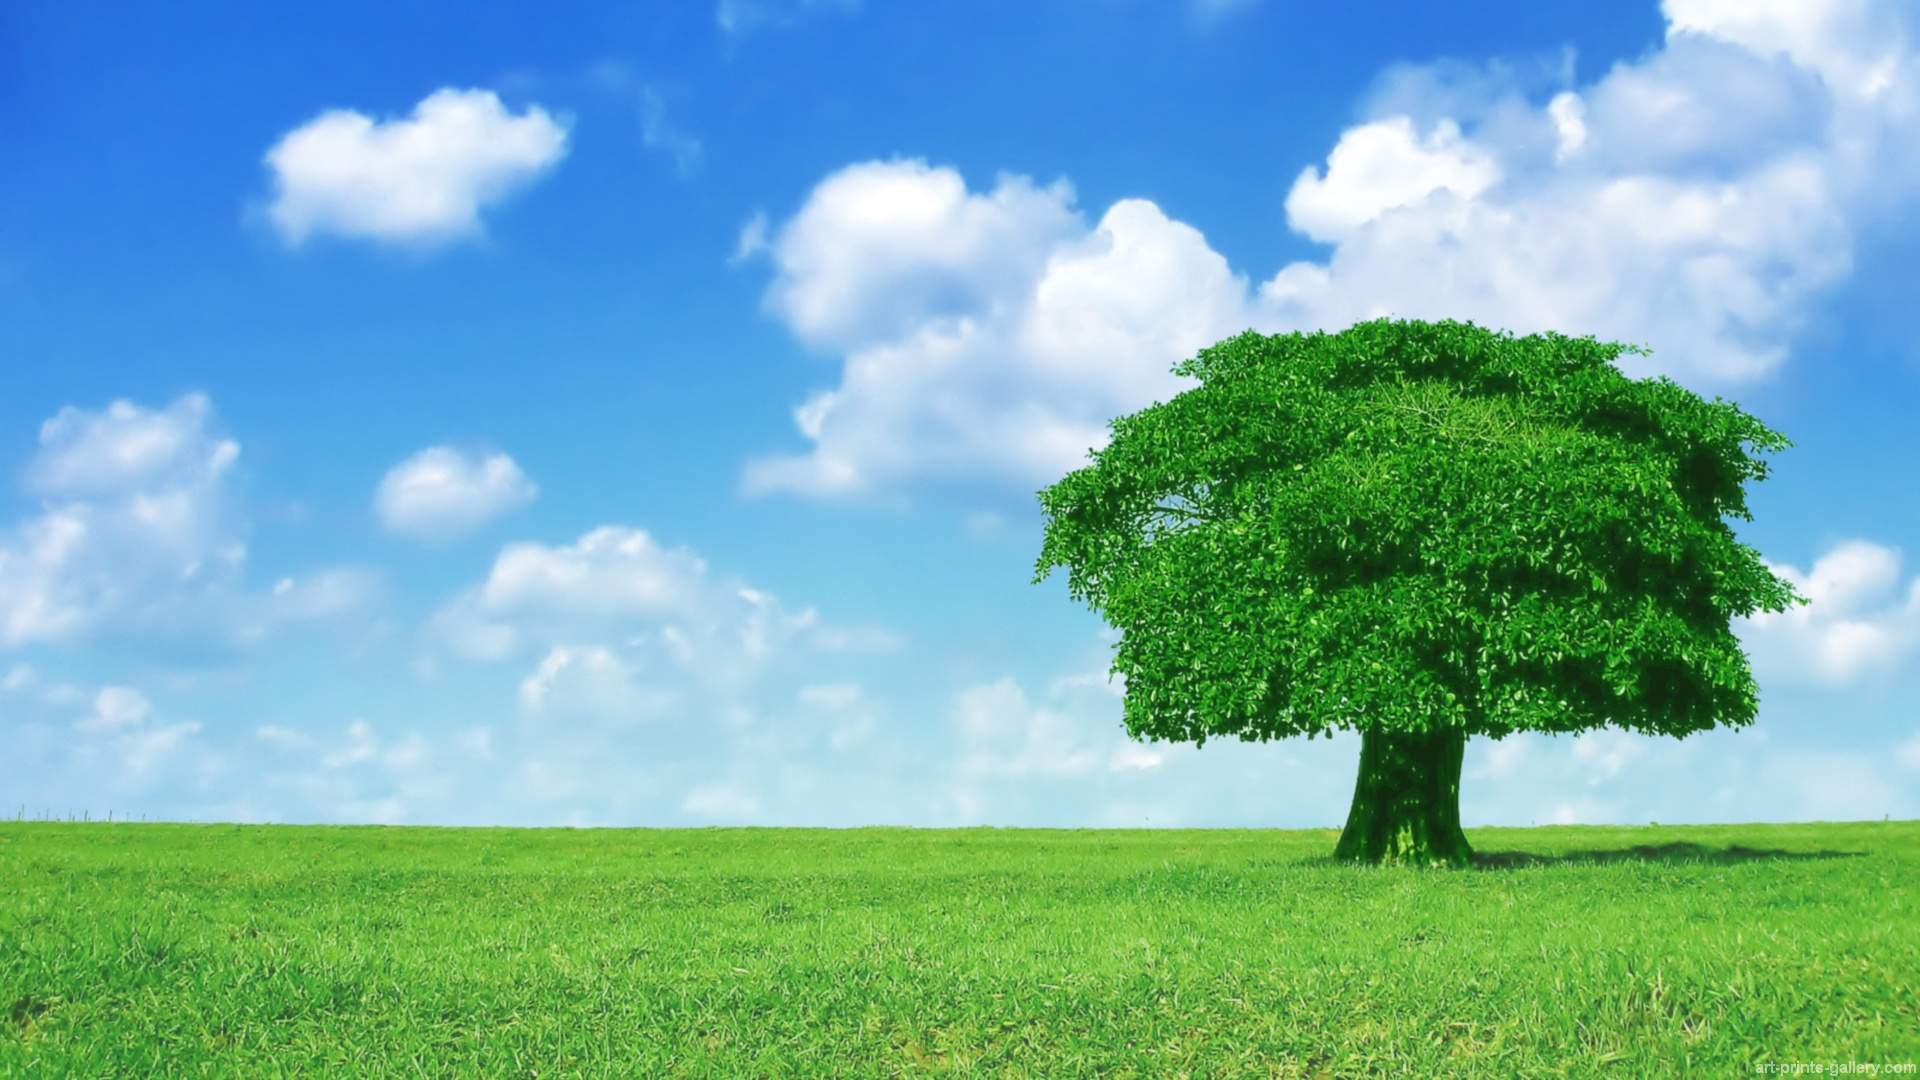 Hd wallpaper tree - Trees Wallpapers Forest Wallpaper Trees Full Hd Wallpapers Trees